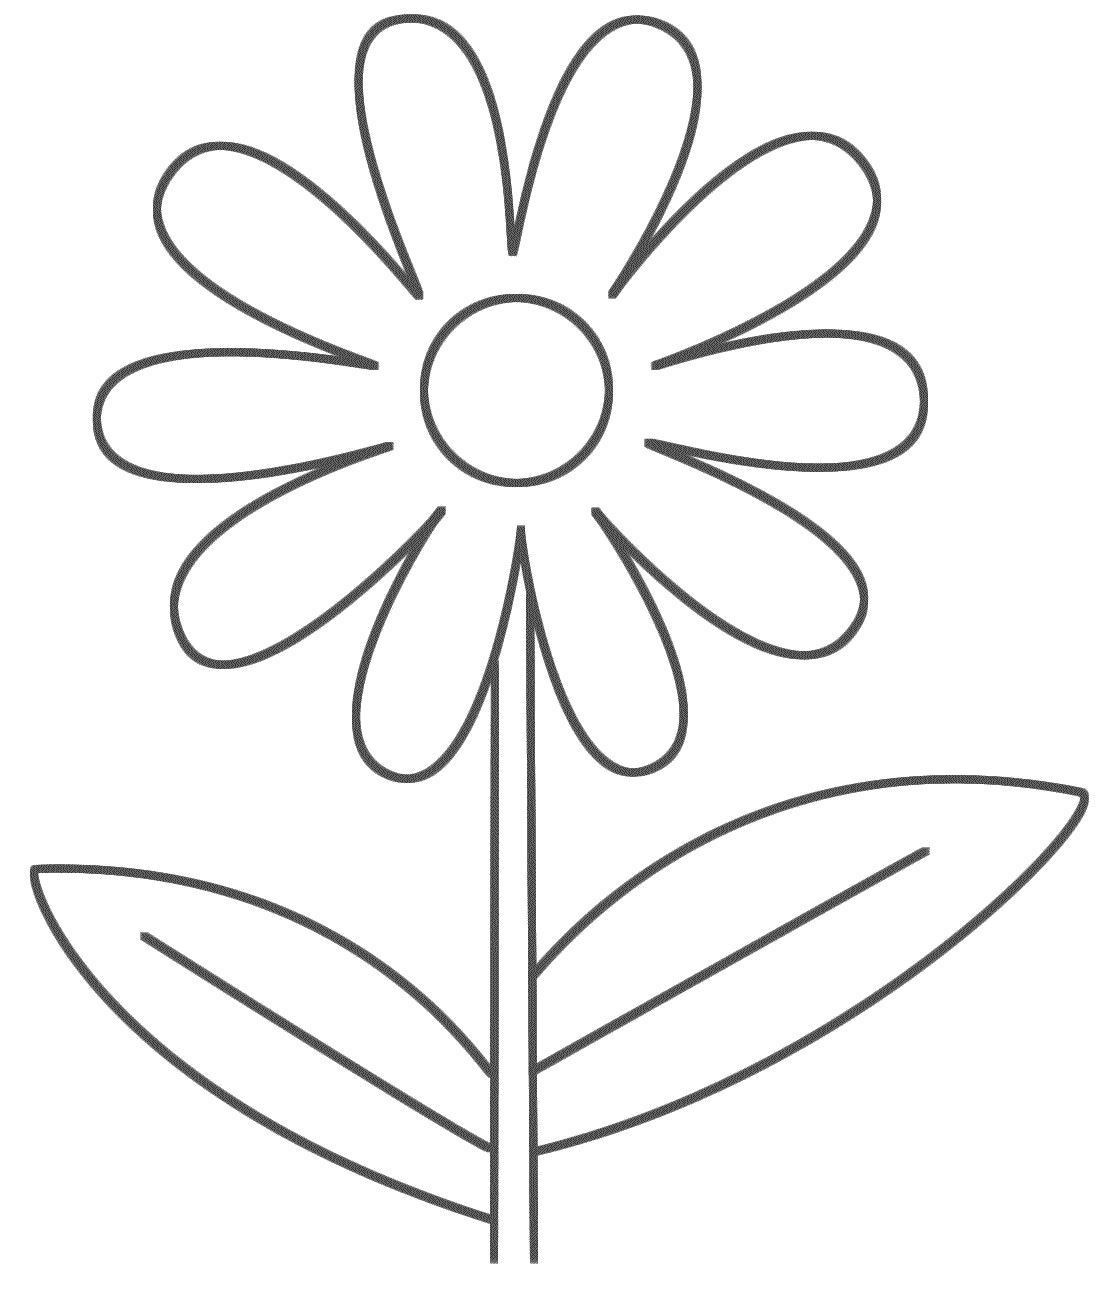 Simple Coloring Pages (5) | ART | Pinterest | 3d pen, Holiday club ...